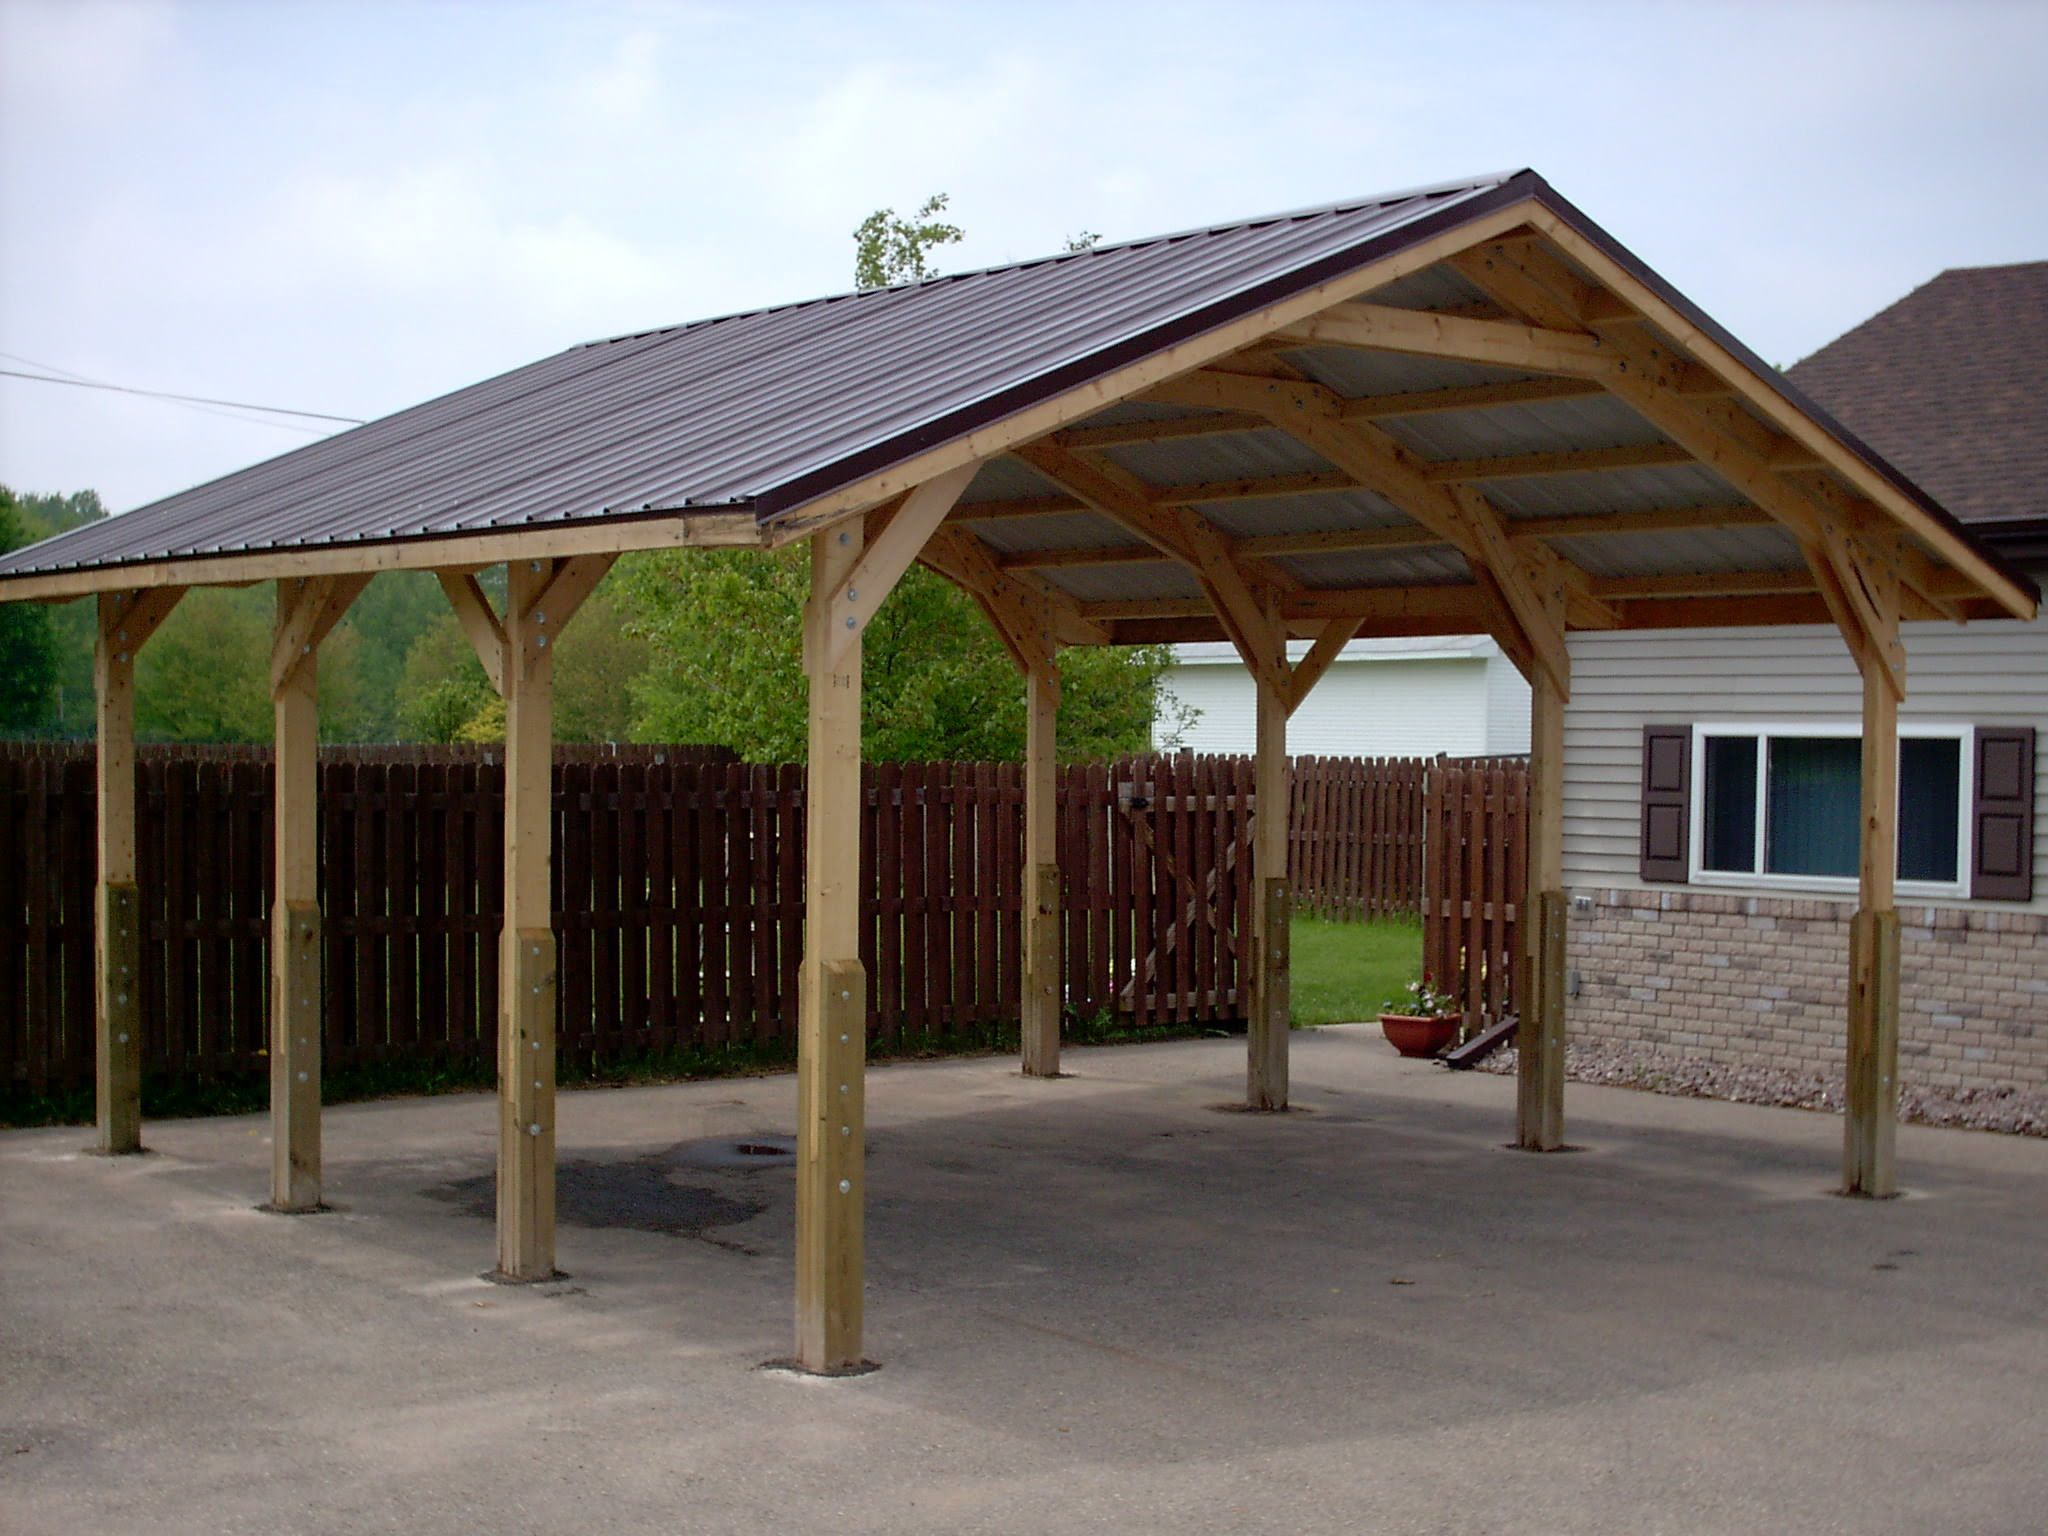 Car port shawanocarport wayneofbowler car ports for House plans with carport